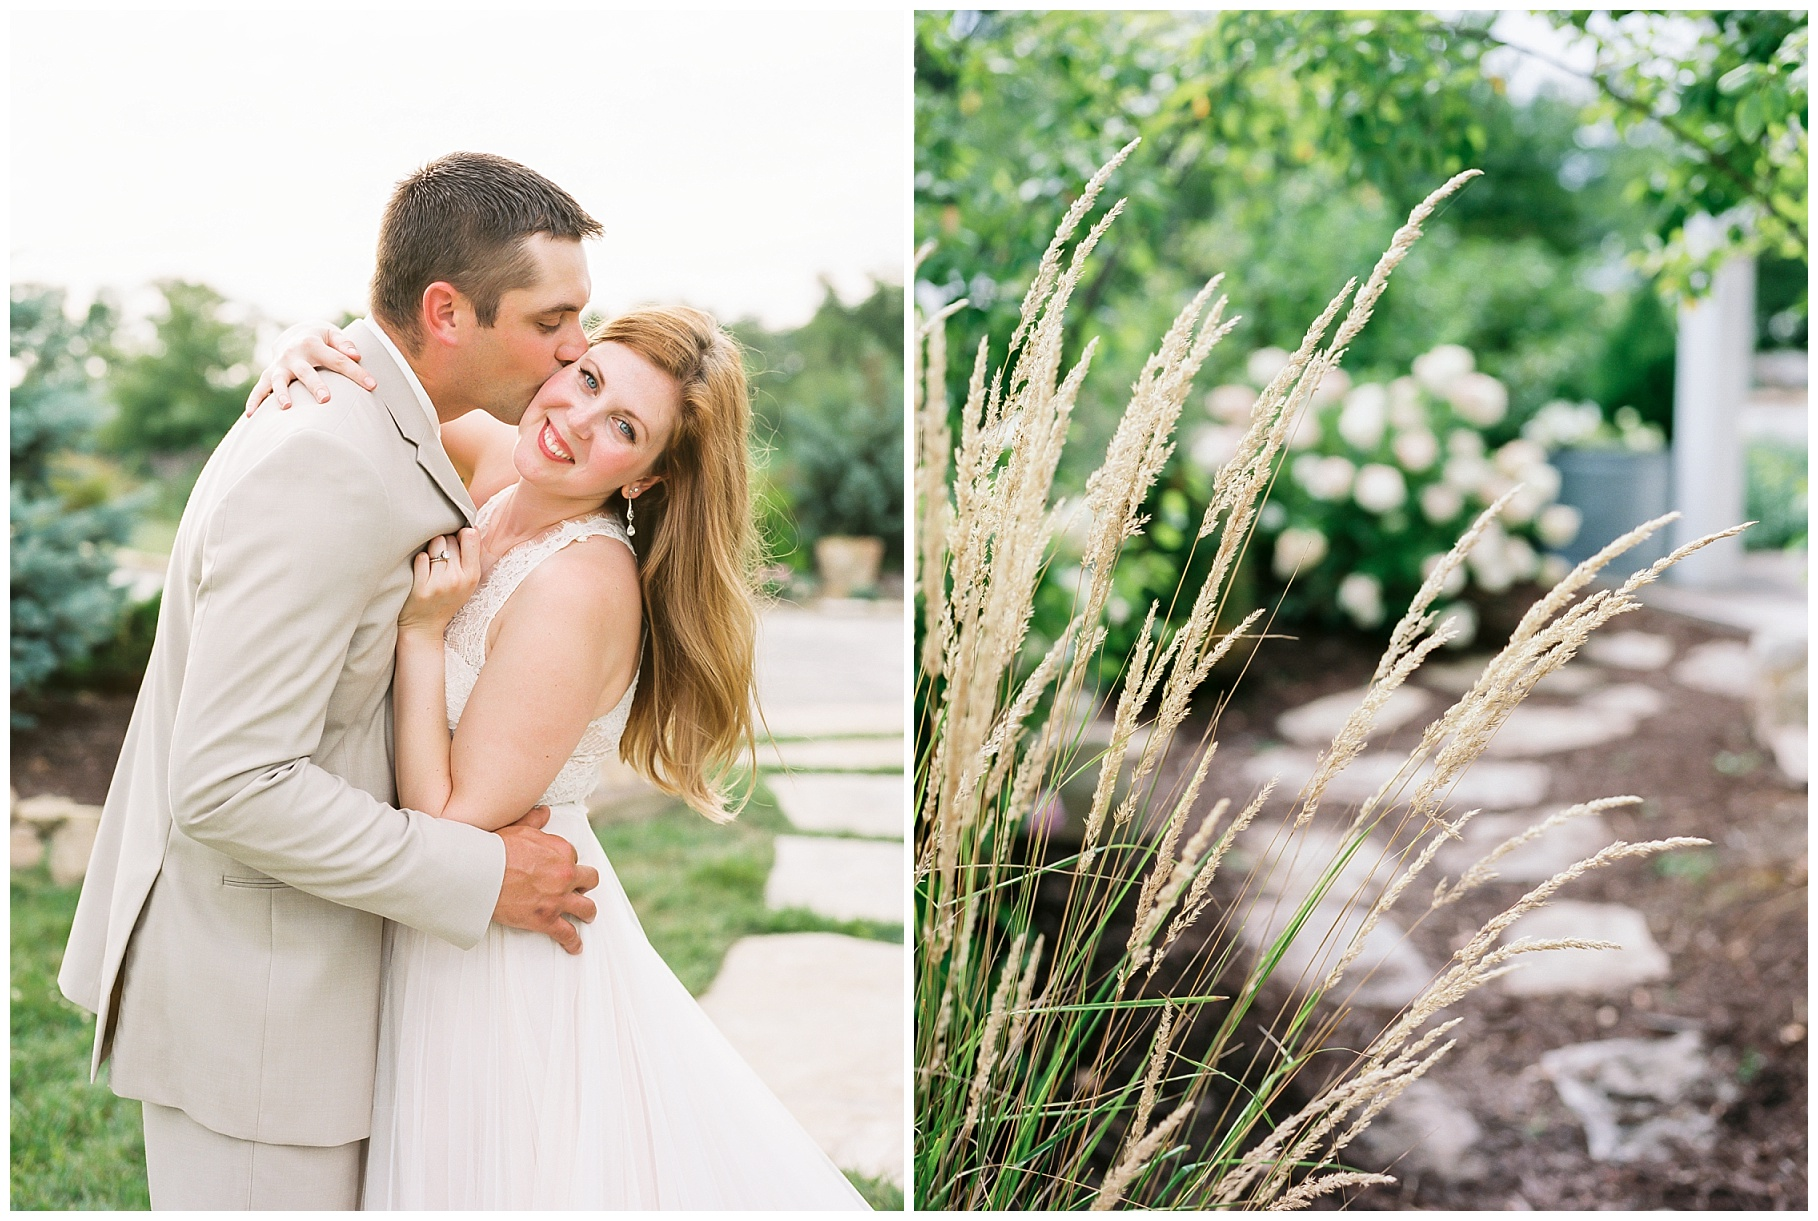 Late Summer Wedding With Pastel Toned Soiree at Blue Bell Farm by Kelsi Kliethermes Photography Best Columbia Missouri Wedding Photographer_0049.jpg